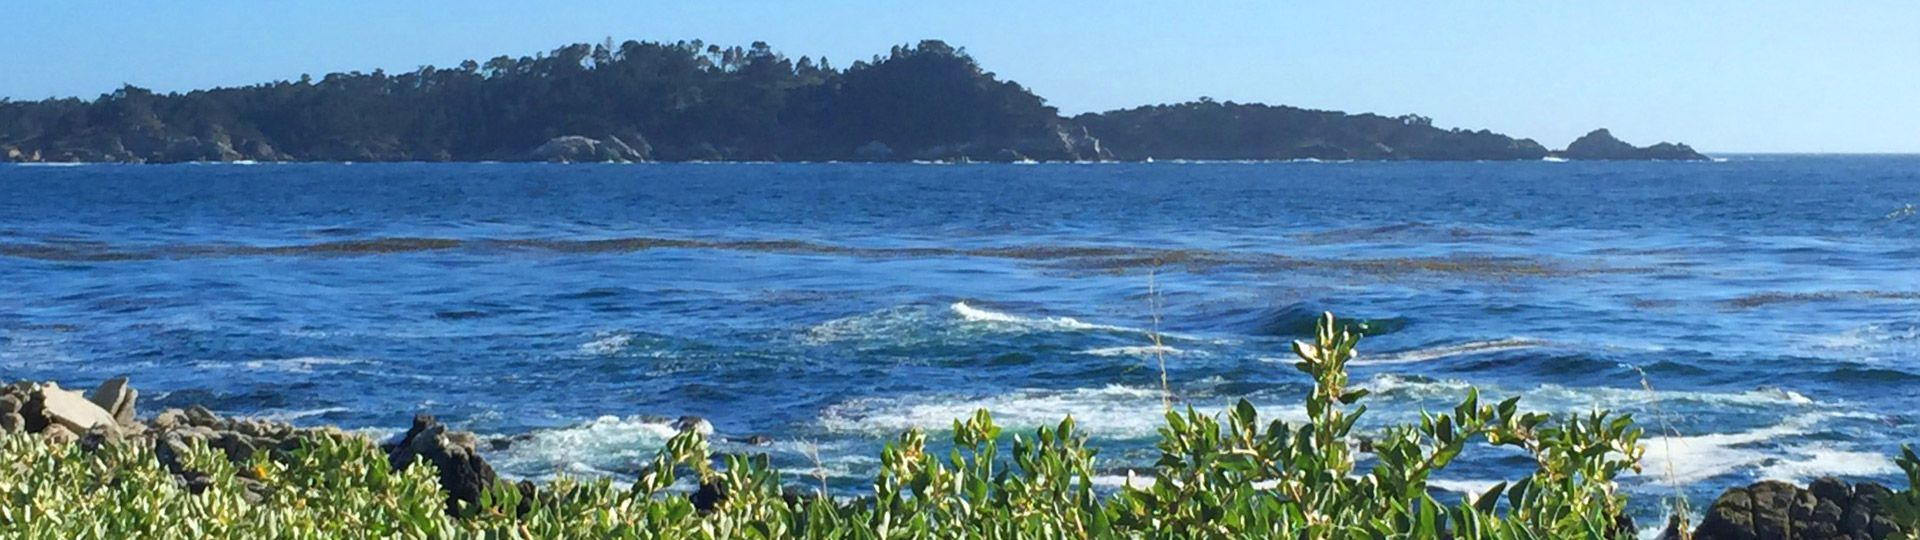 Ocean View from Carmel Bay to Point Lobos